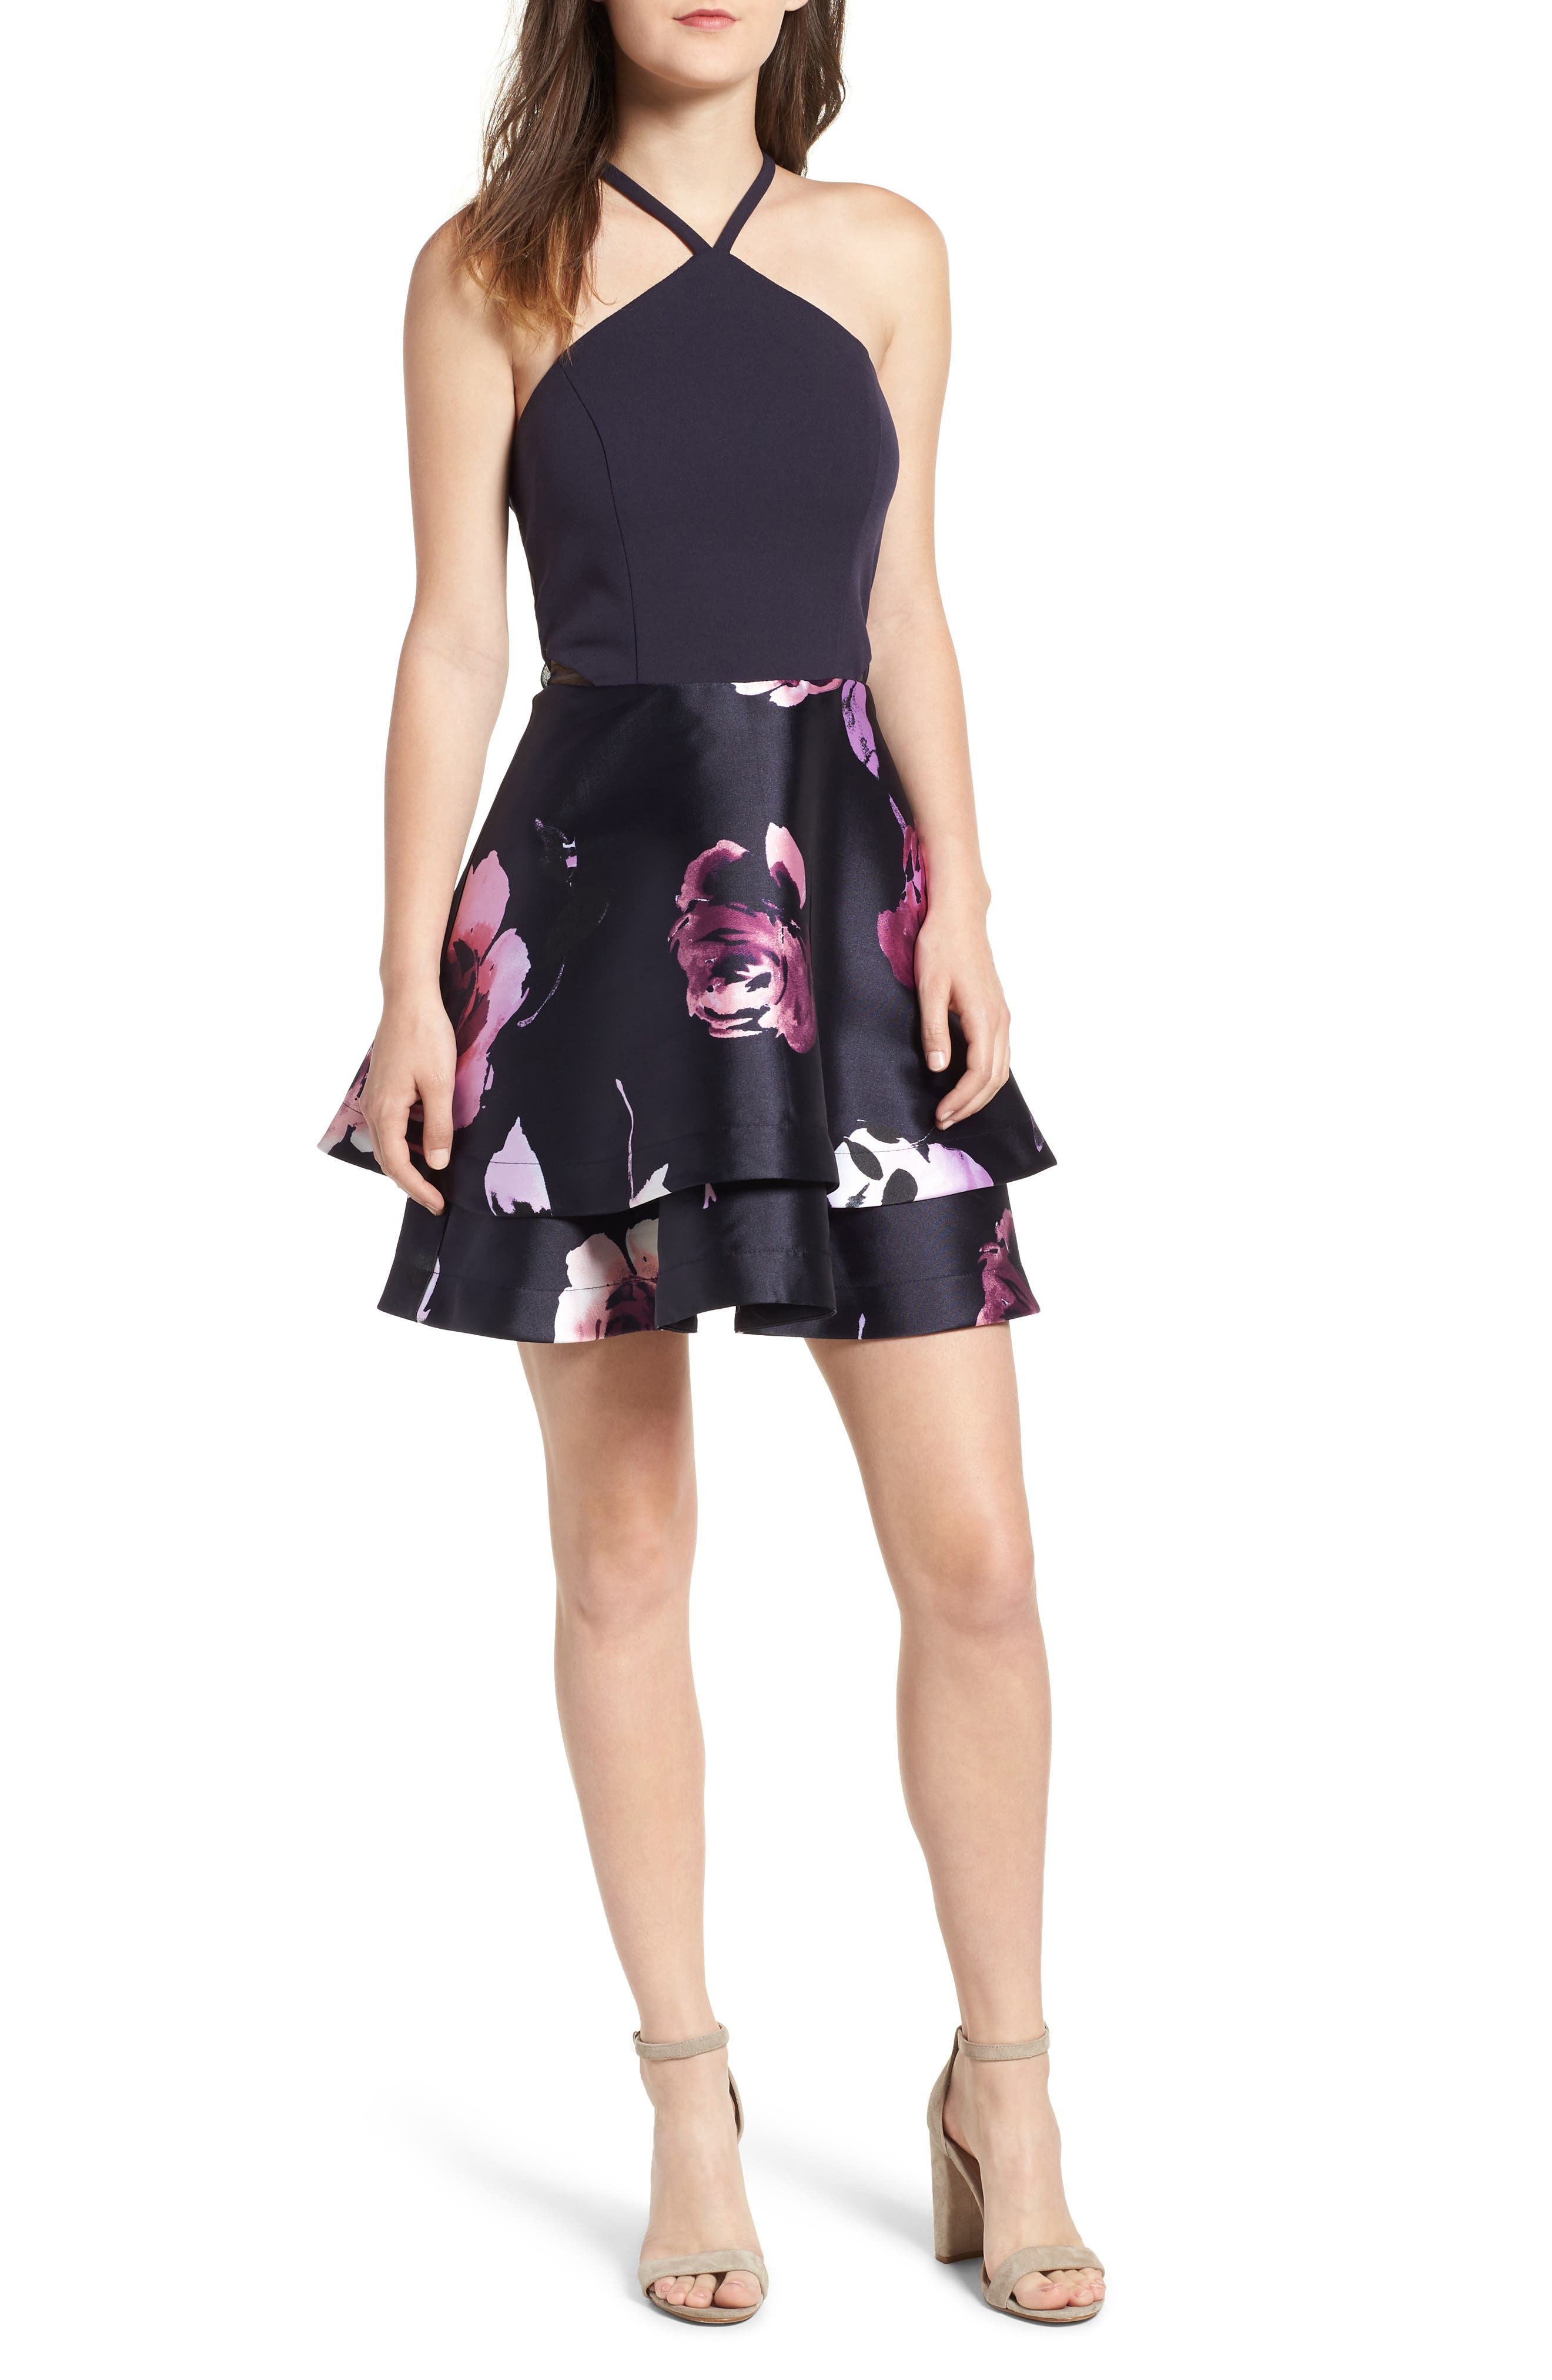 SPEECHLESS Floral Fit & Flare Dress, Main, color, NAVY/ BLUSH